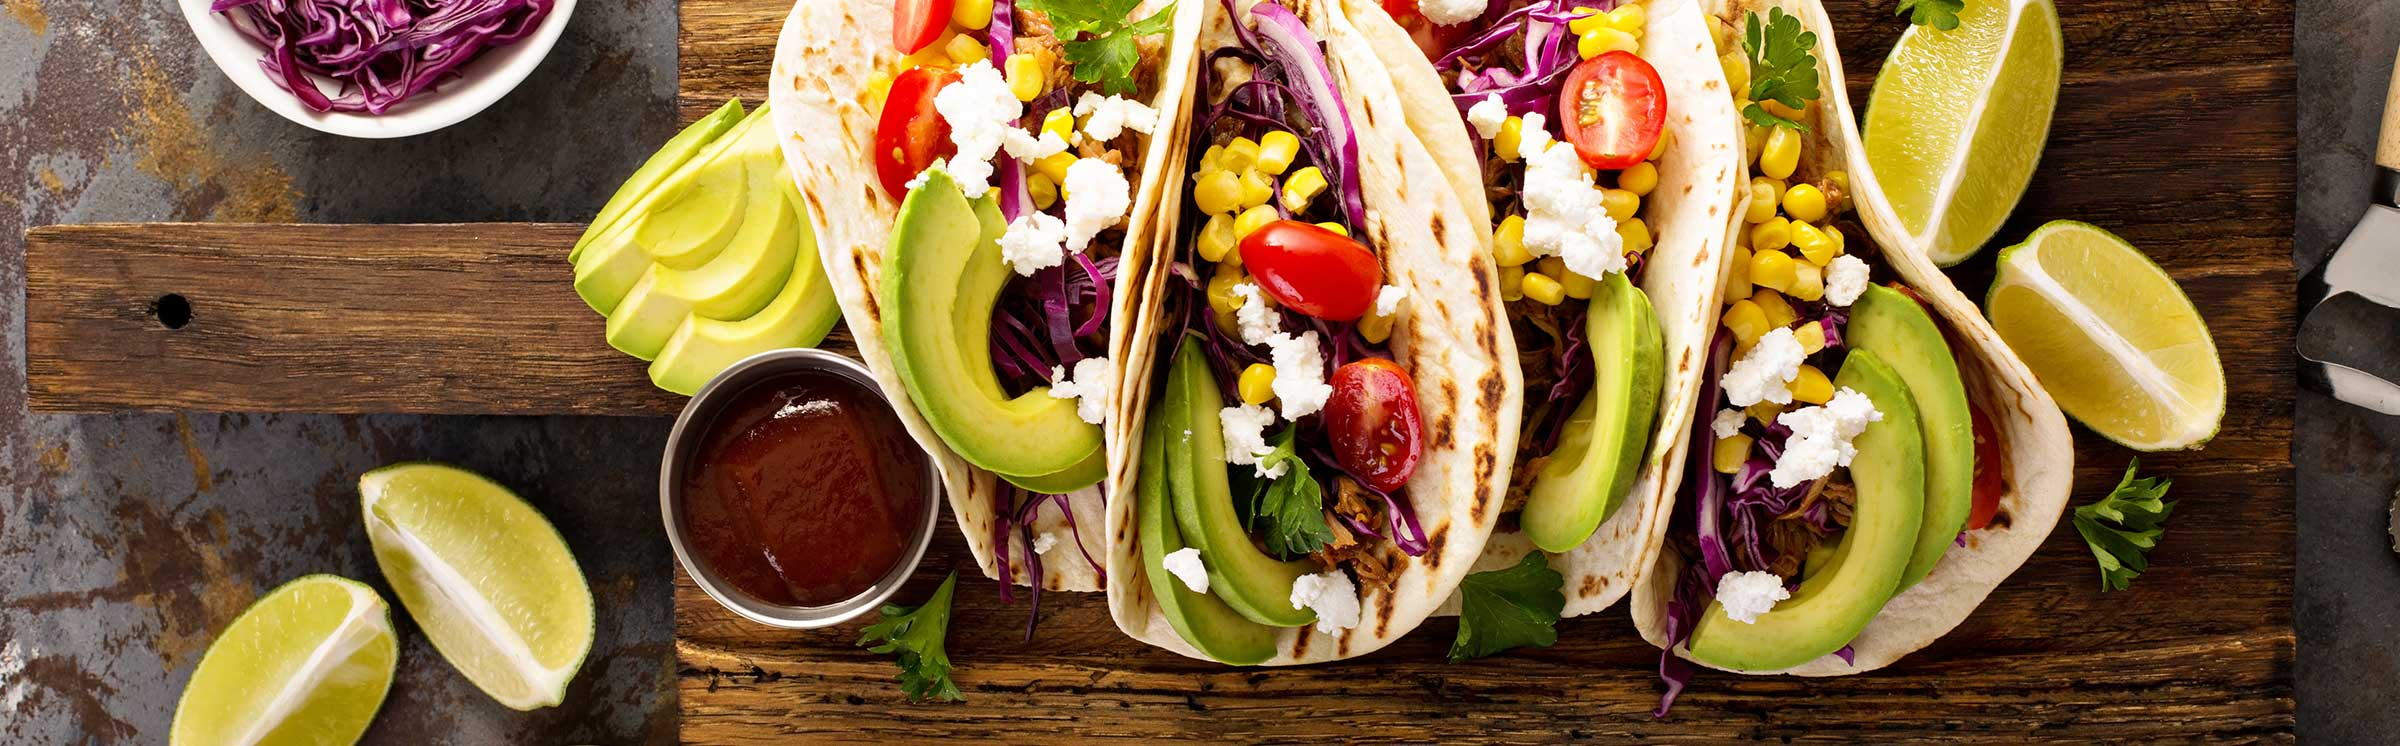 laura-truter-cooking-catering-tacos-mexican-food.jpg